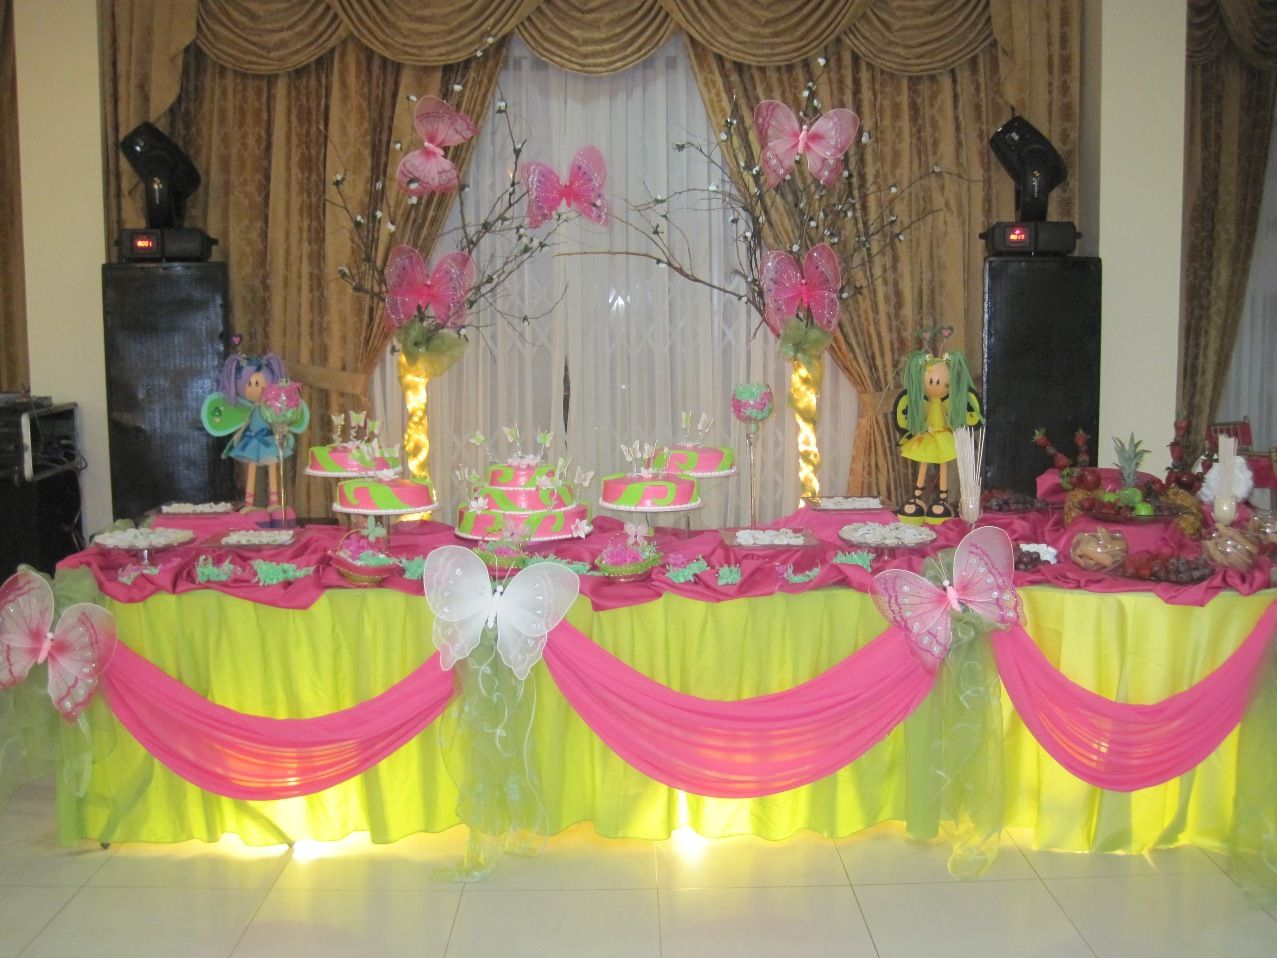 Classroom Decoration Ideas For Quinceaneras ~ Main table decorations for quinceanera